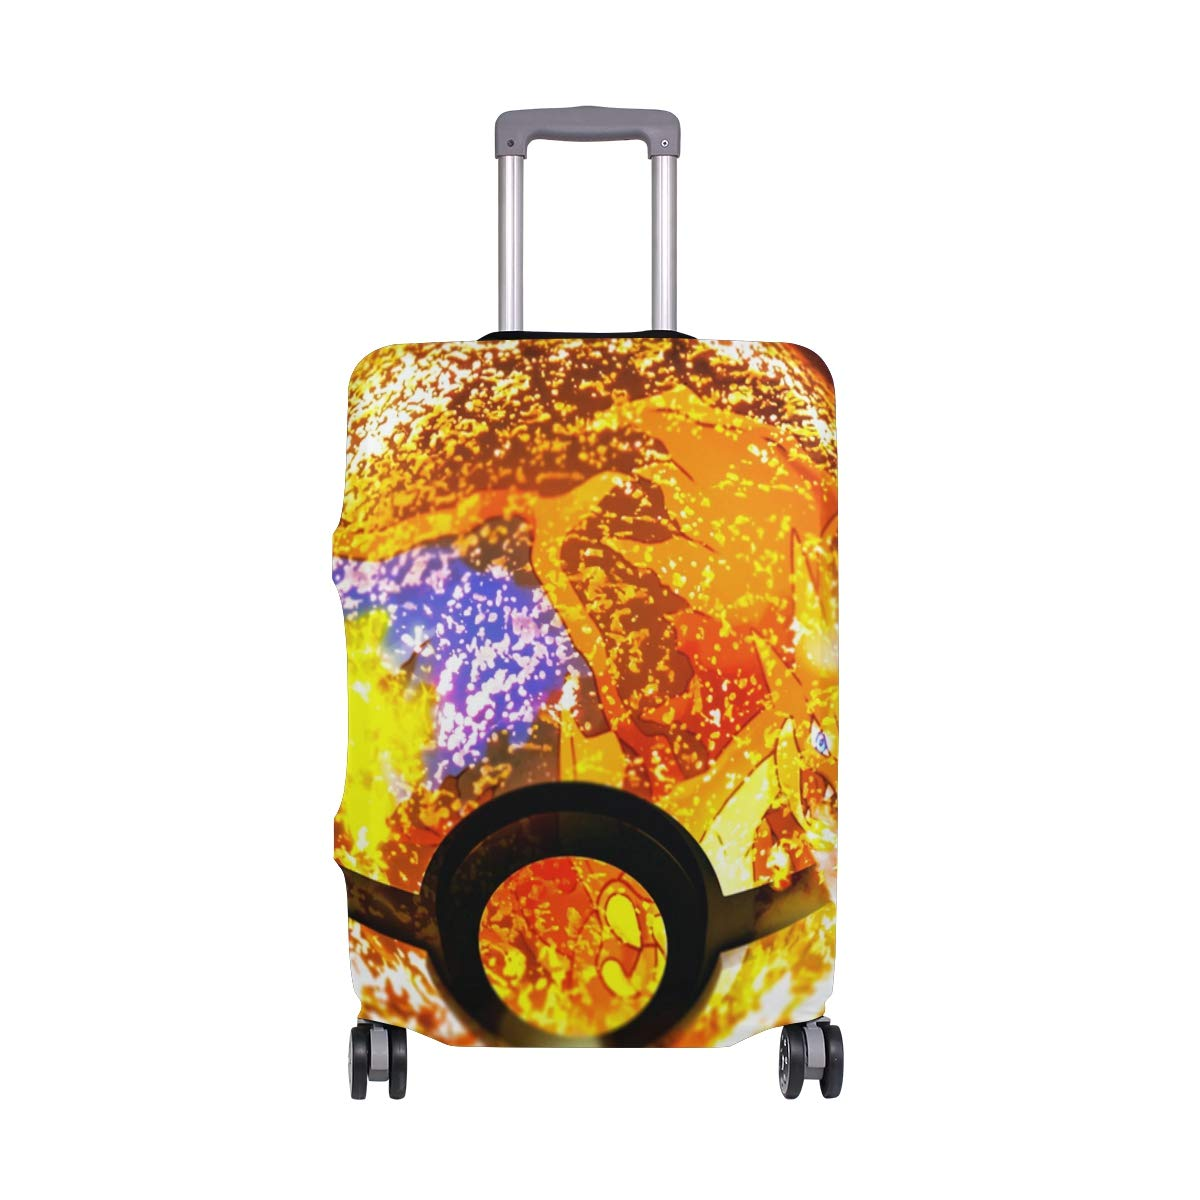 Super Smash Bros Pokeball Of Mega Charizard Travel Luggage Cover Suitcase Protector Fits 26-28 Inch Washable Baggage Covers